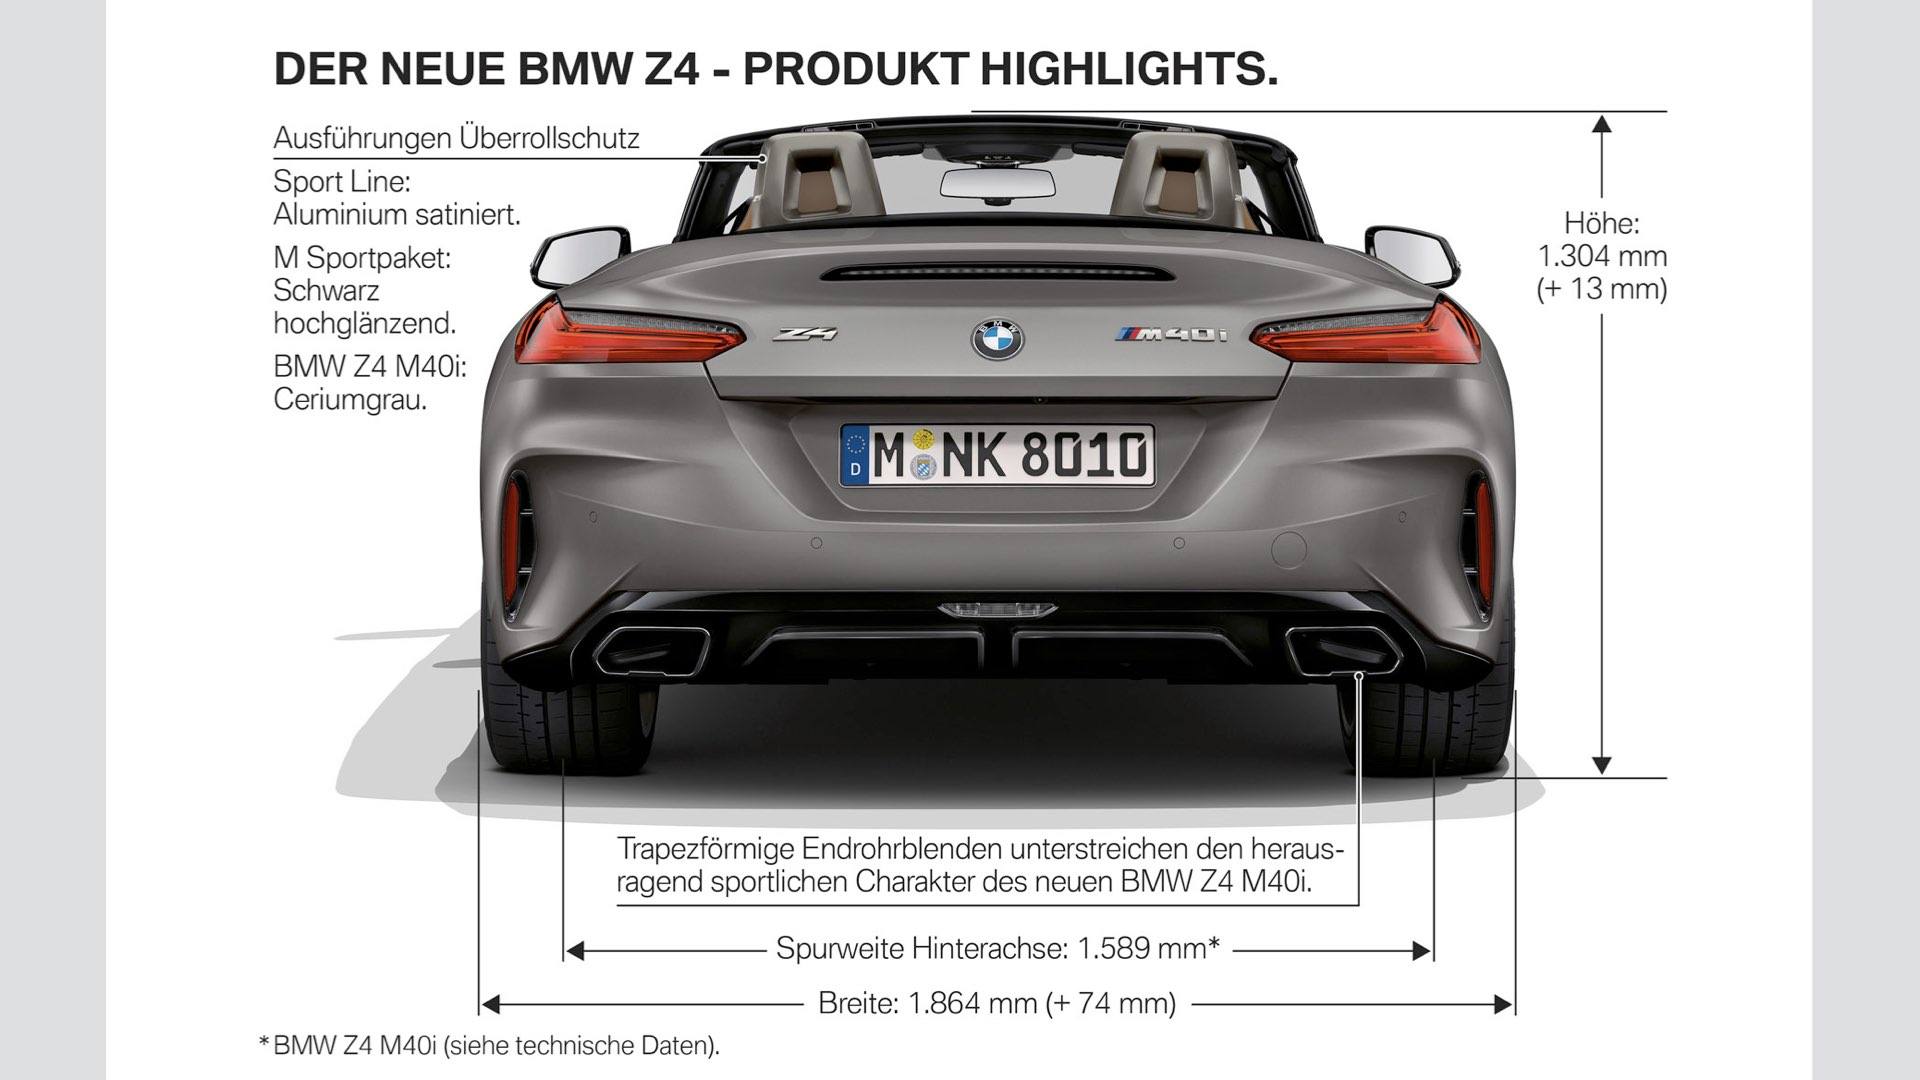 Bmw Z4 2019 Technische Daten 4 Pepper And Gold